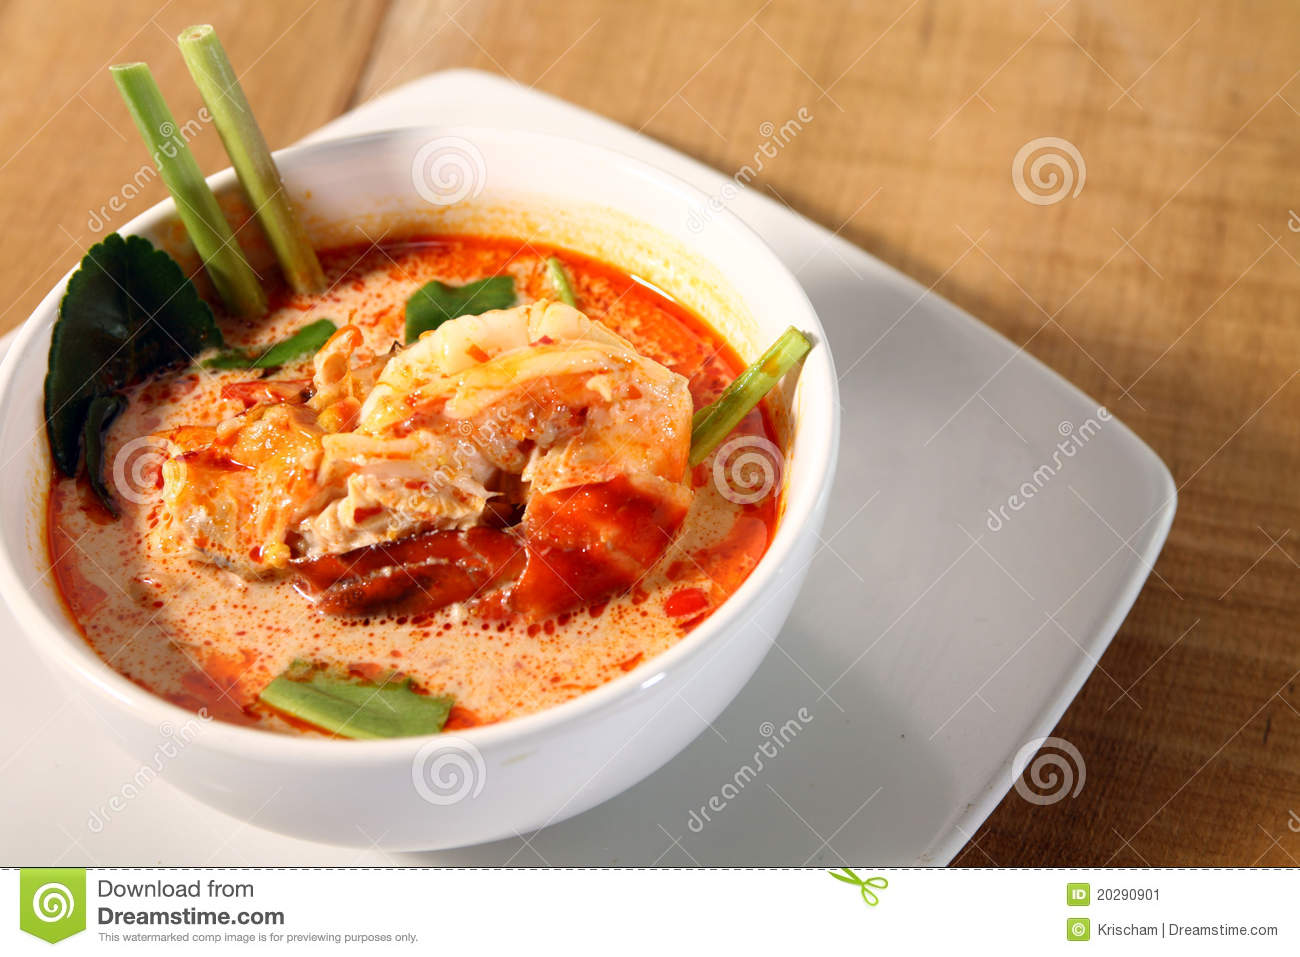 Creamy Tom Yam Kung (Thai Hot And Sour Soup With Shrimp) Recipe ...